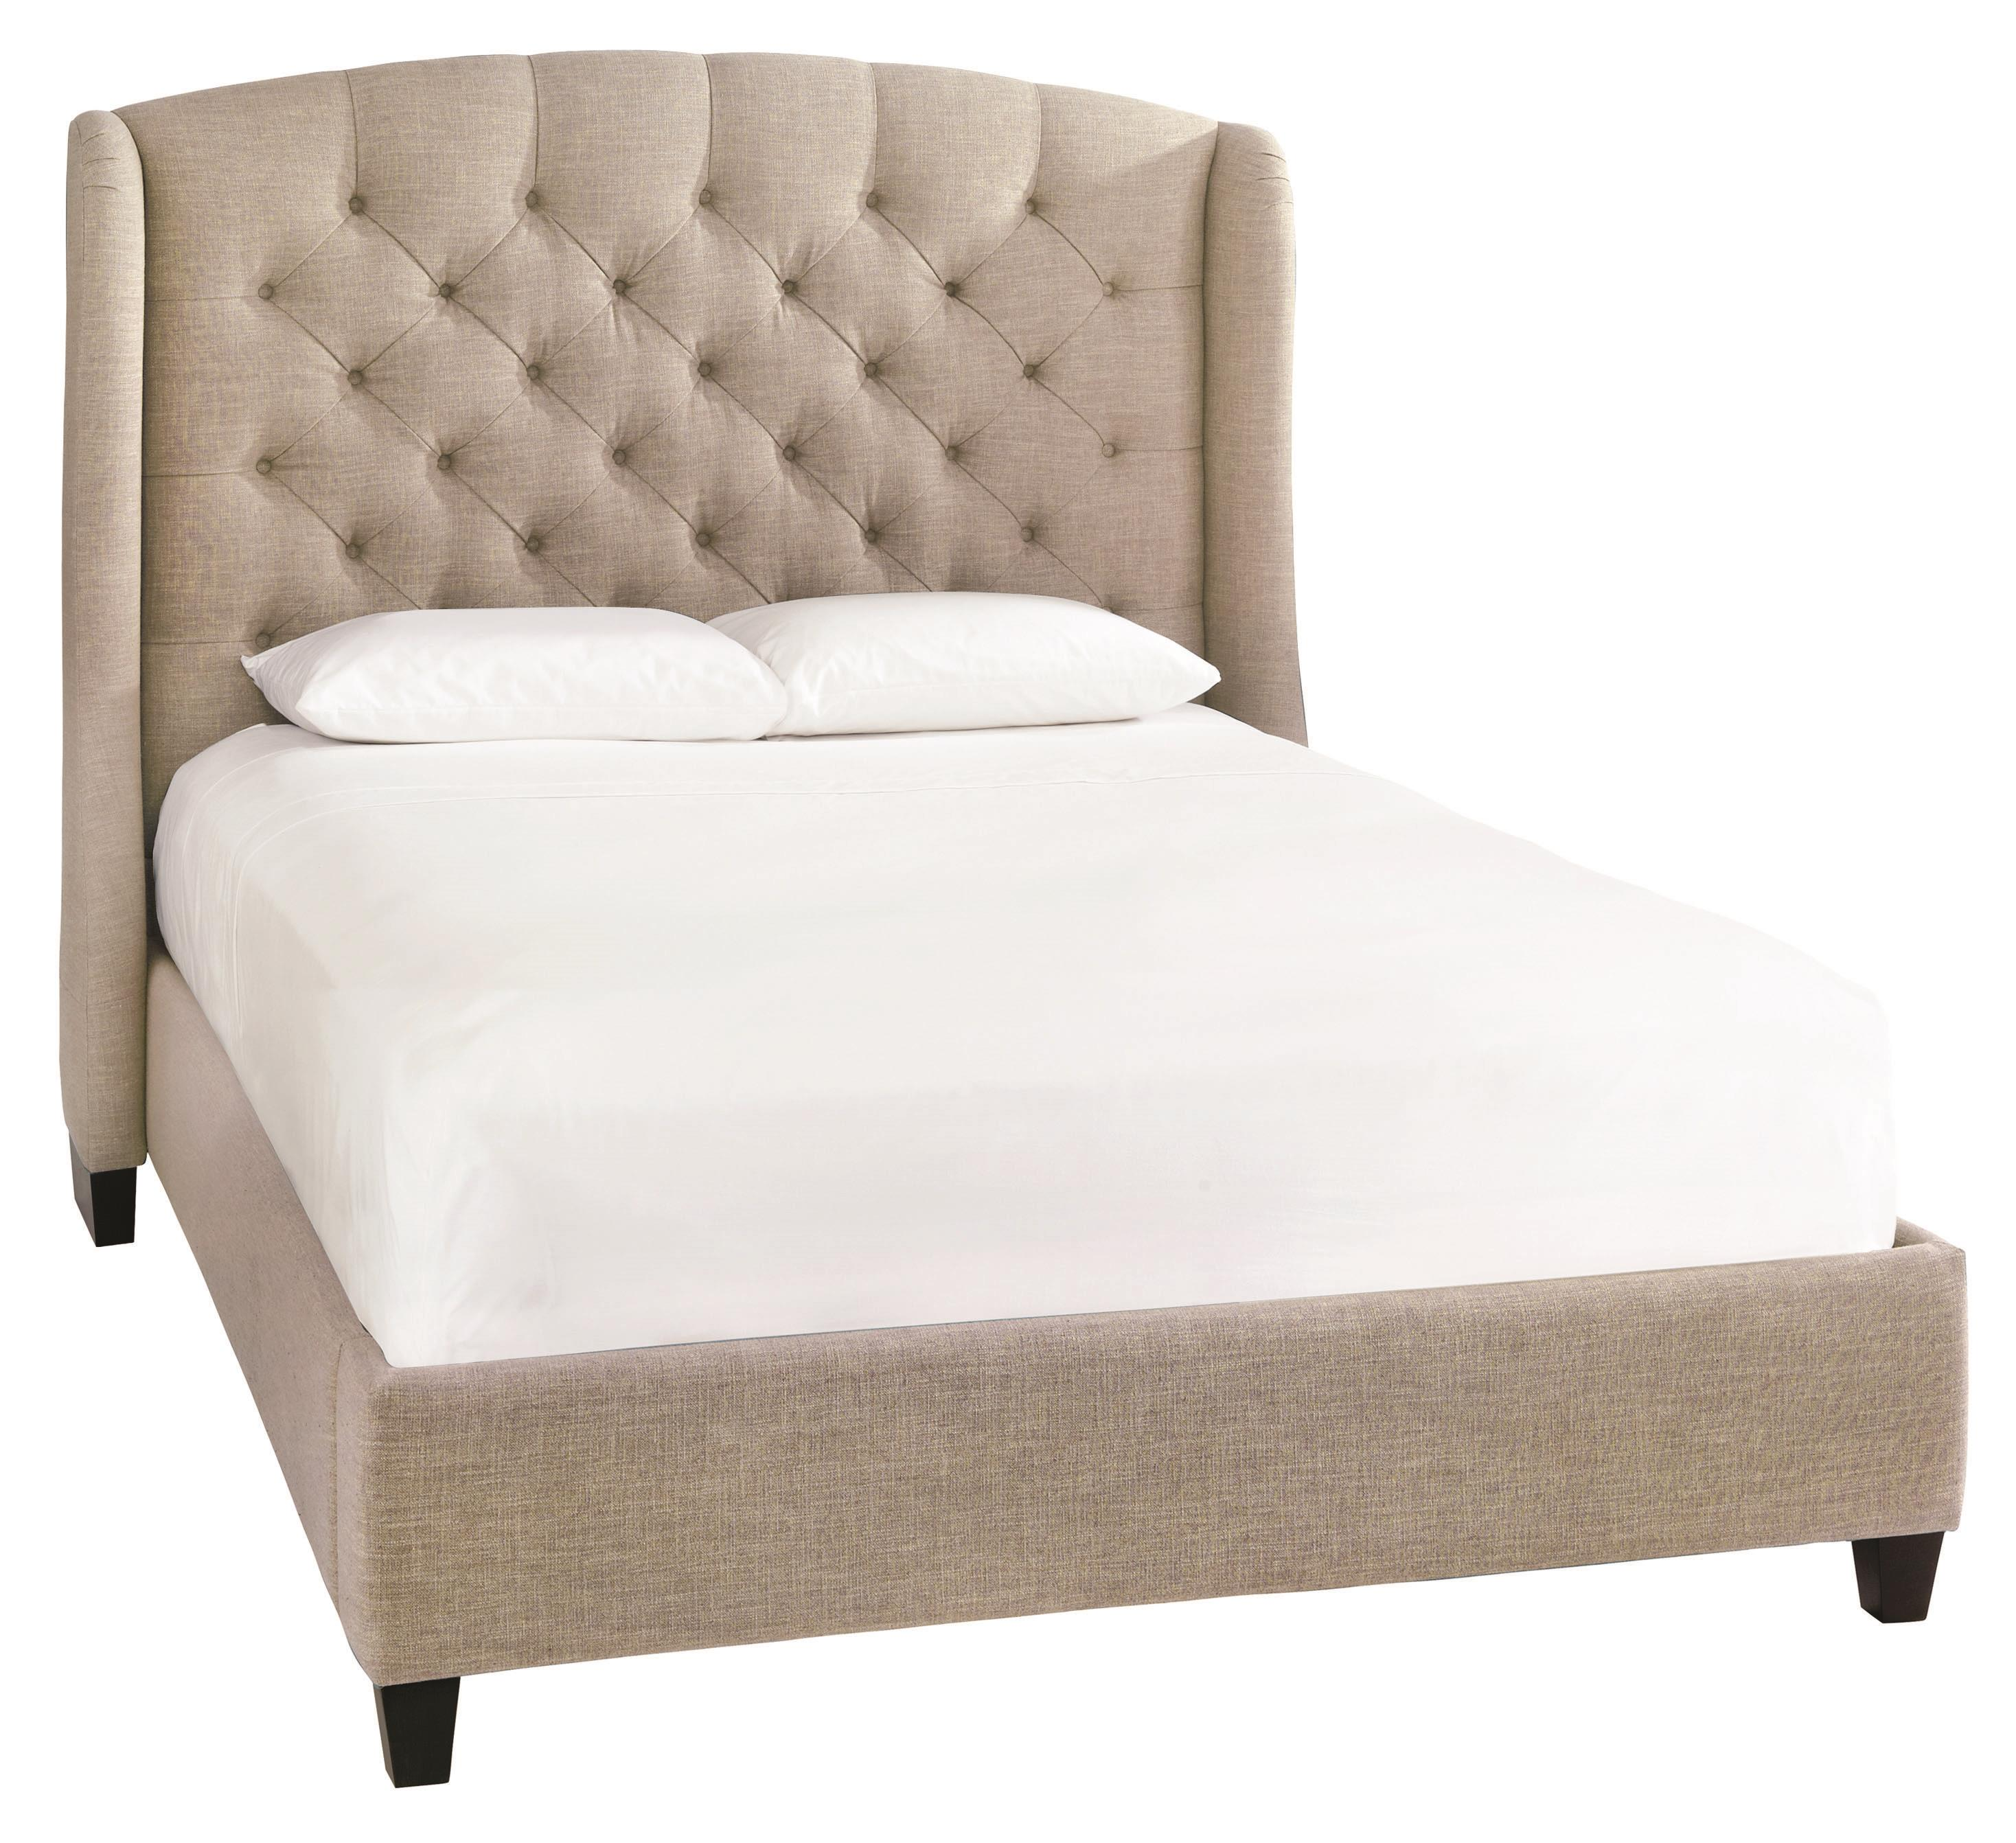 Bassett Custom Upholstered Beds Paris King Size